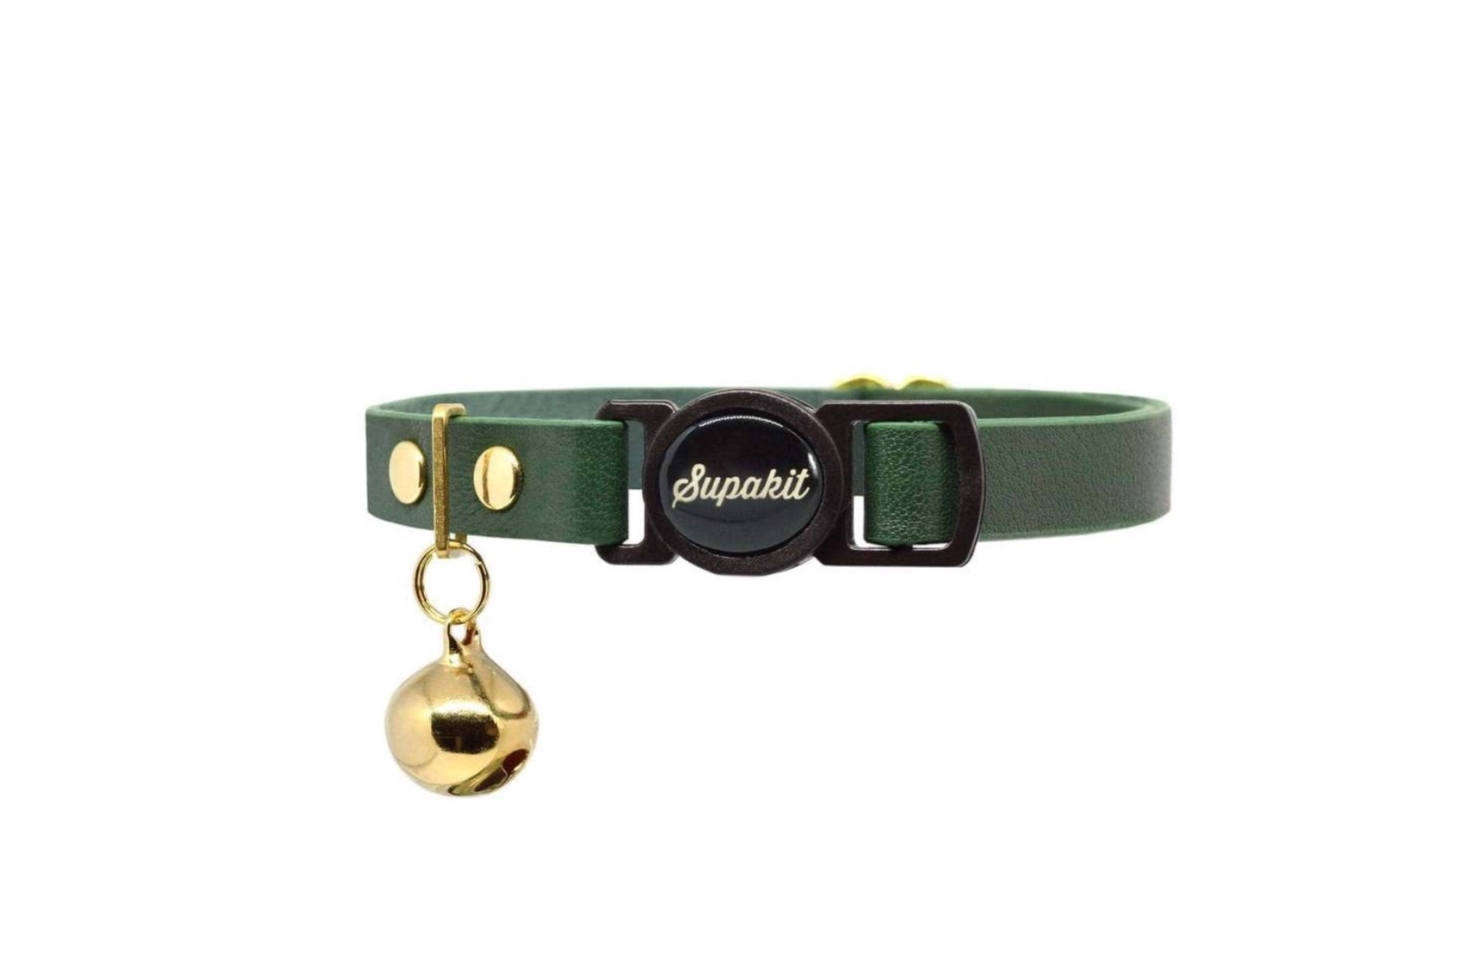 The Breakaway Leather Cat Collar from London brand Supakit comes in two sizes and eight colors; we&#8